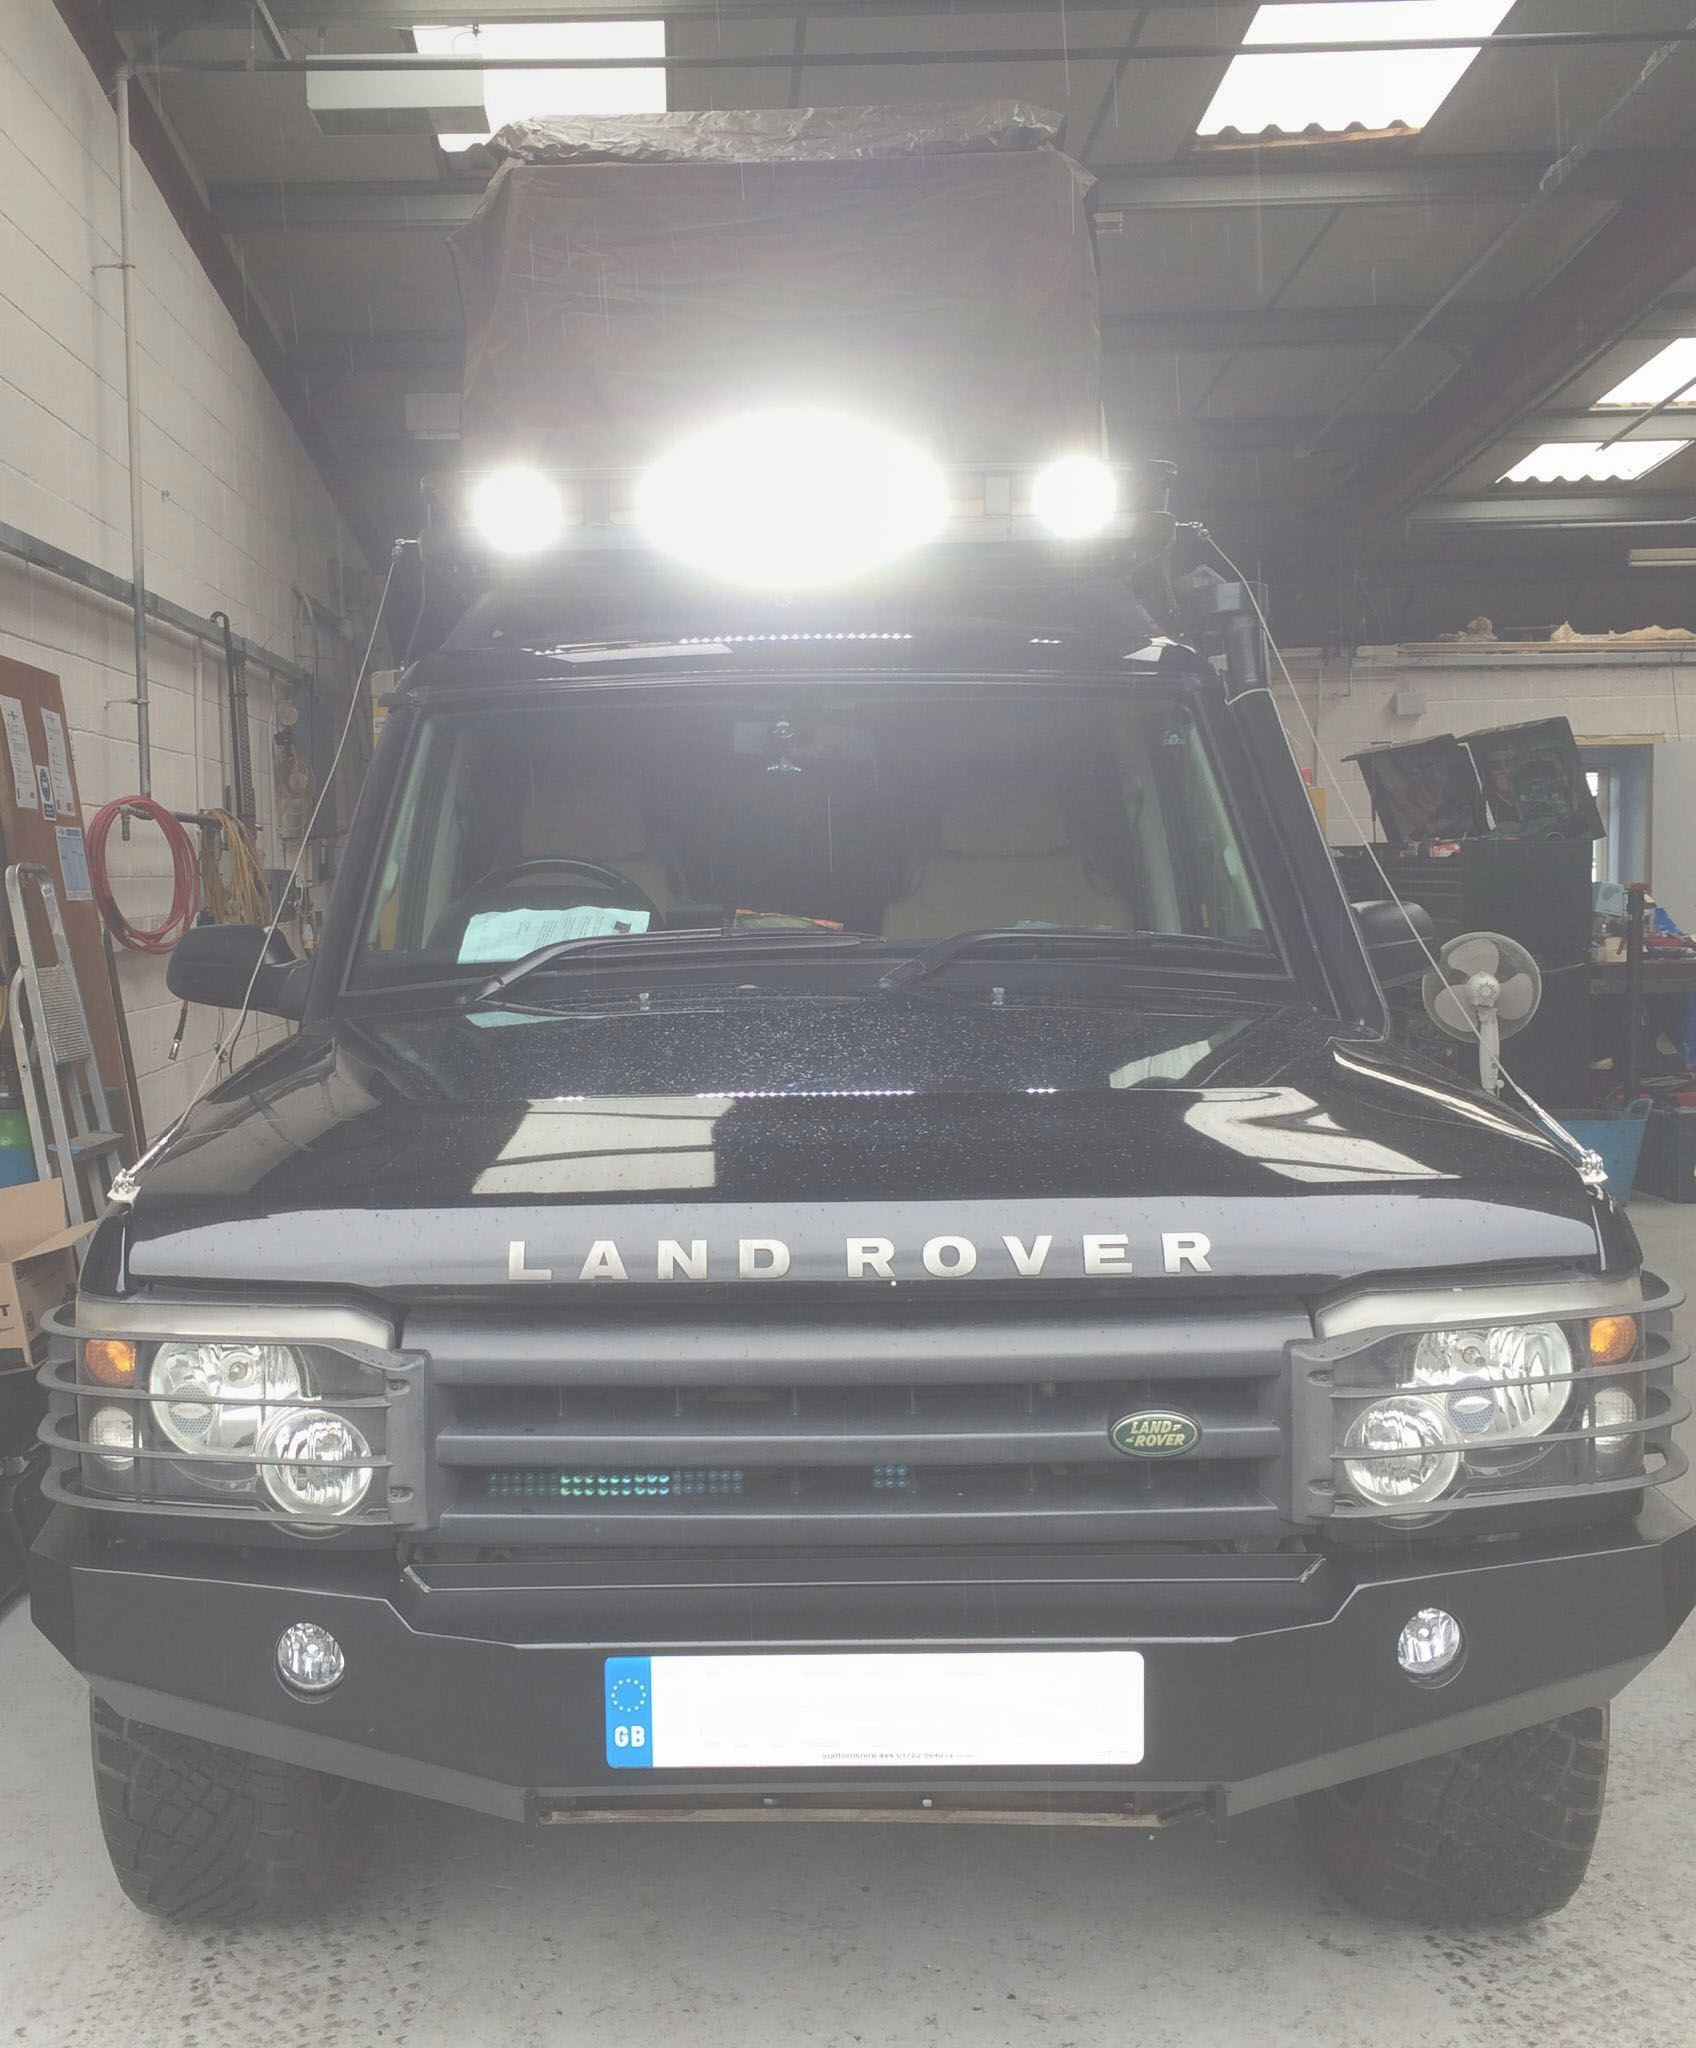 Discovery 2 Expedition edition